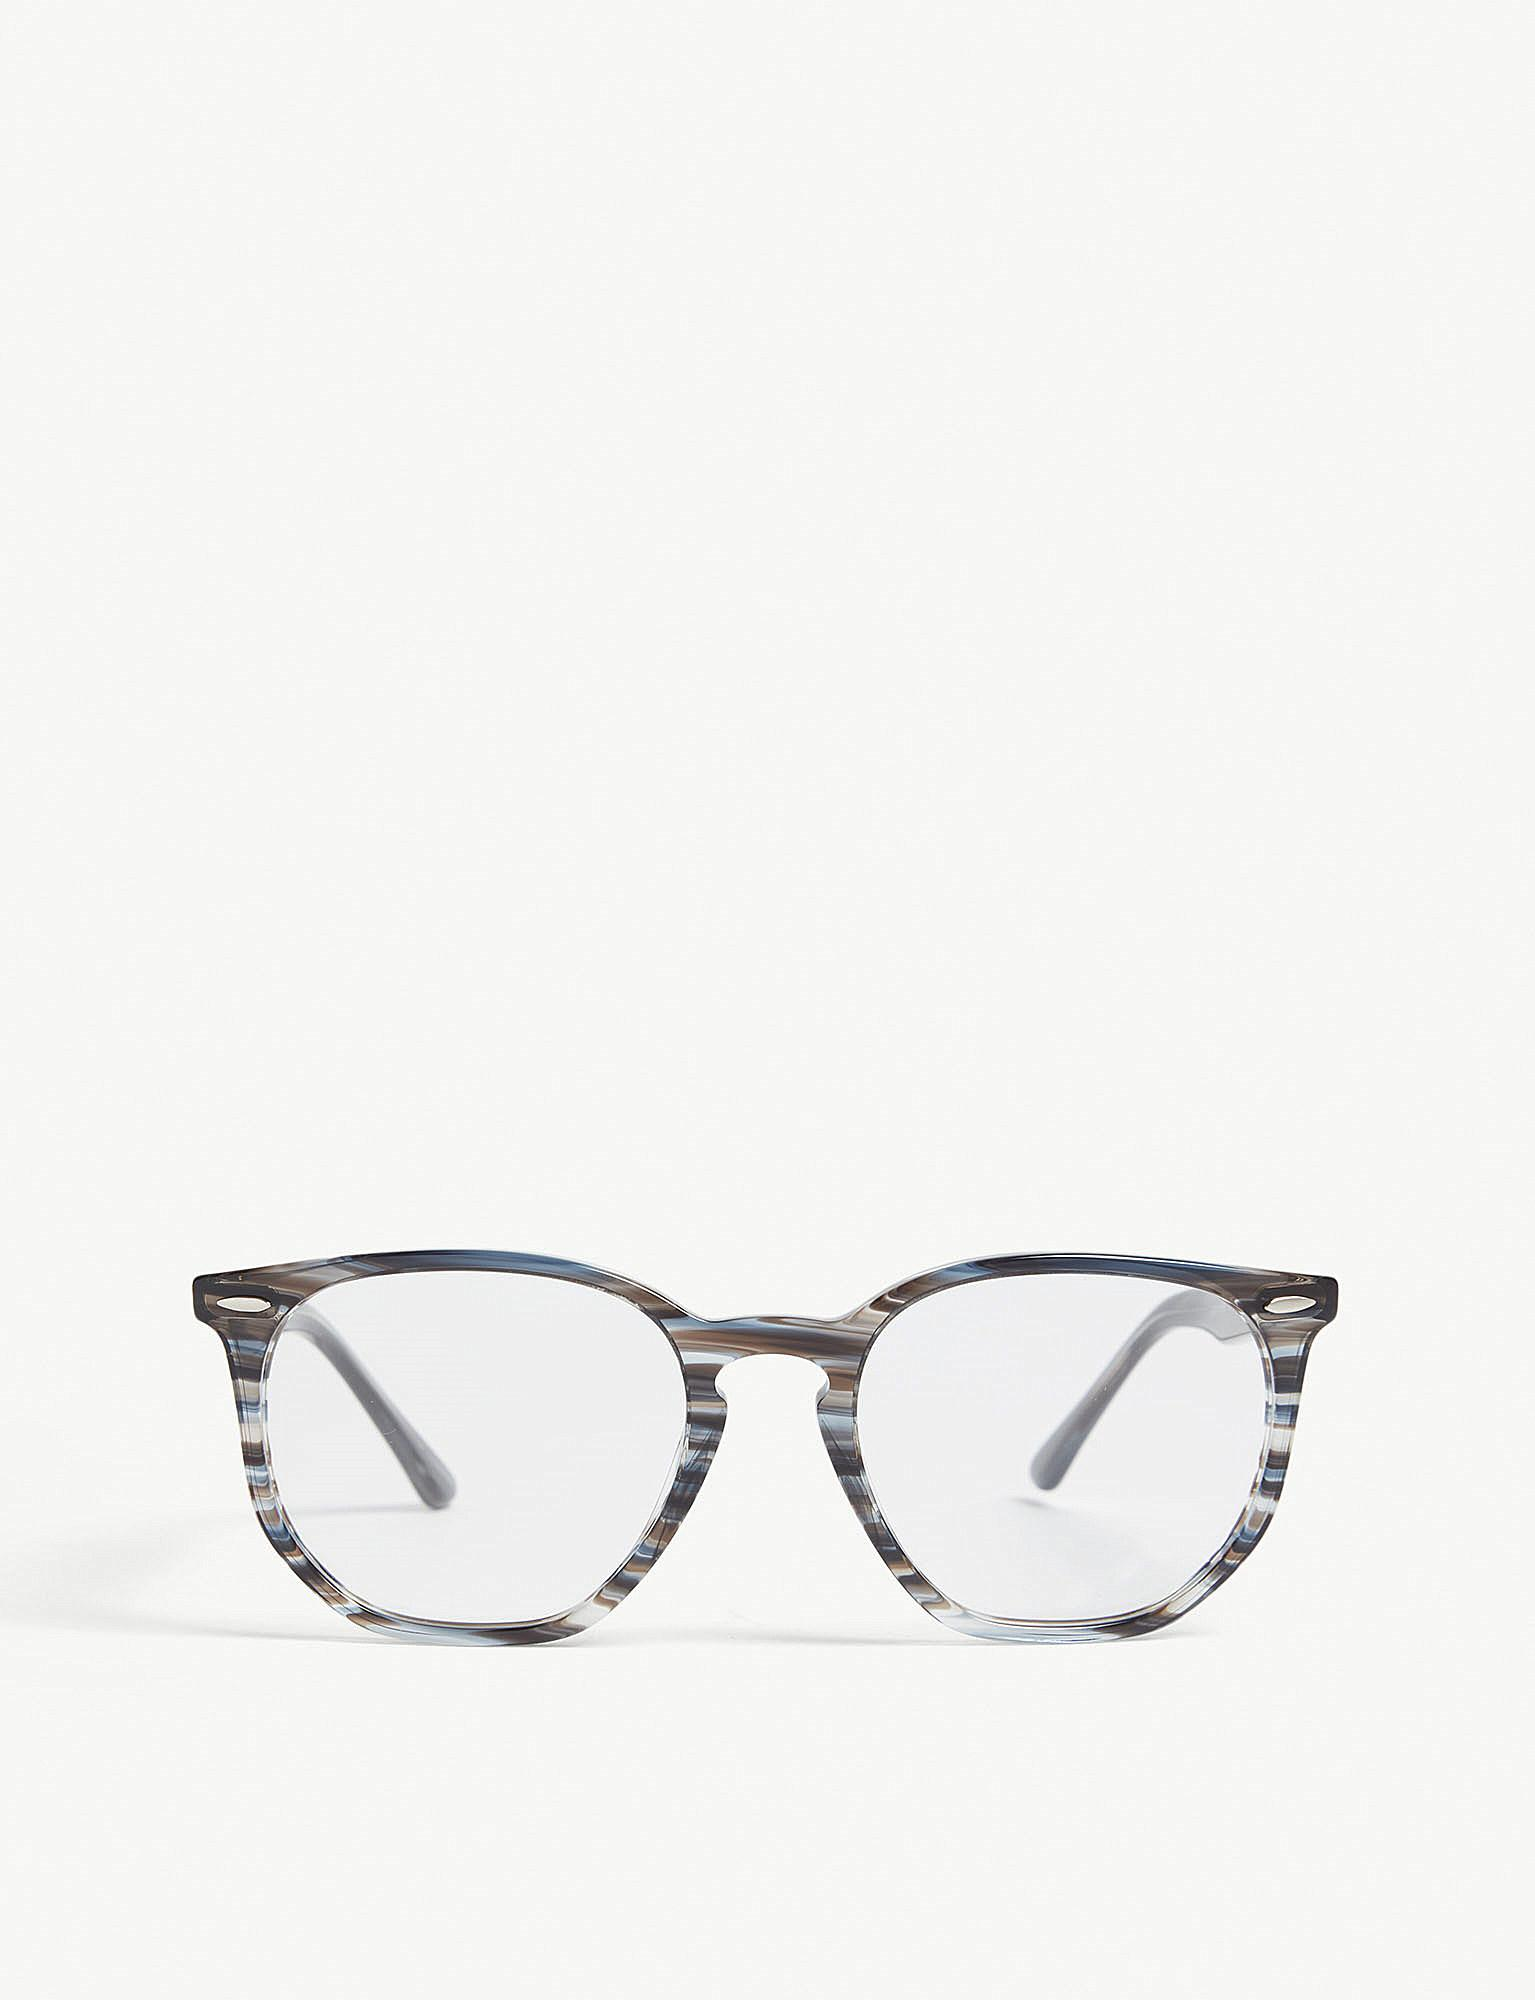 1e8851a02ef Lyst - Ray-Ban Rb7151 Square-frame Glasses in Gray for Men